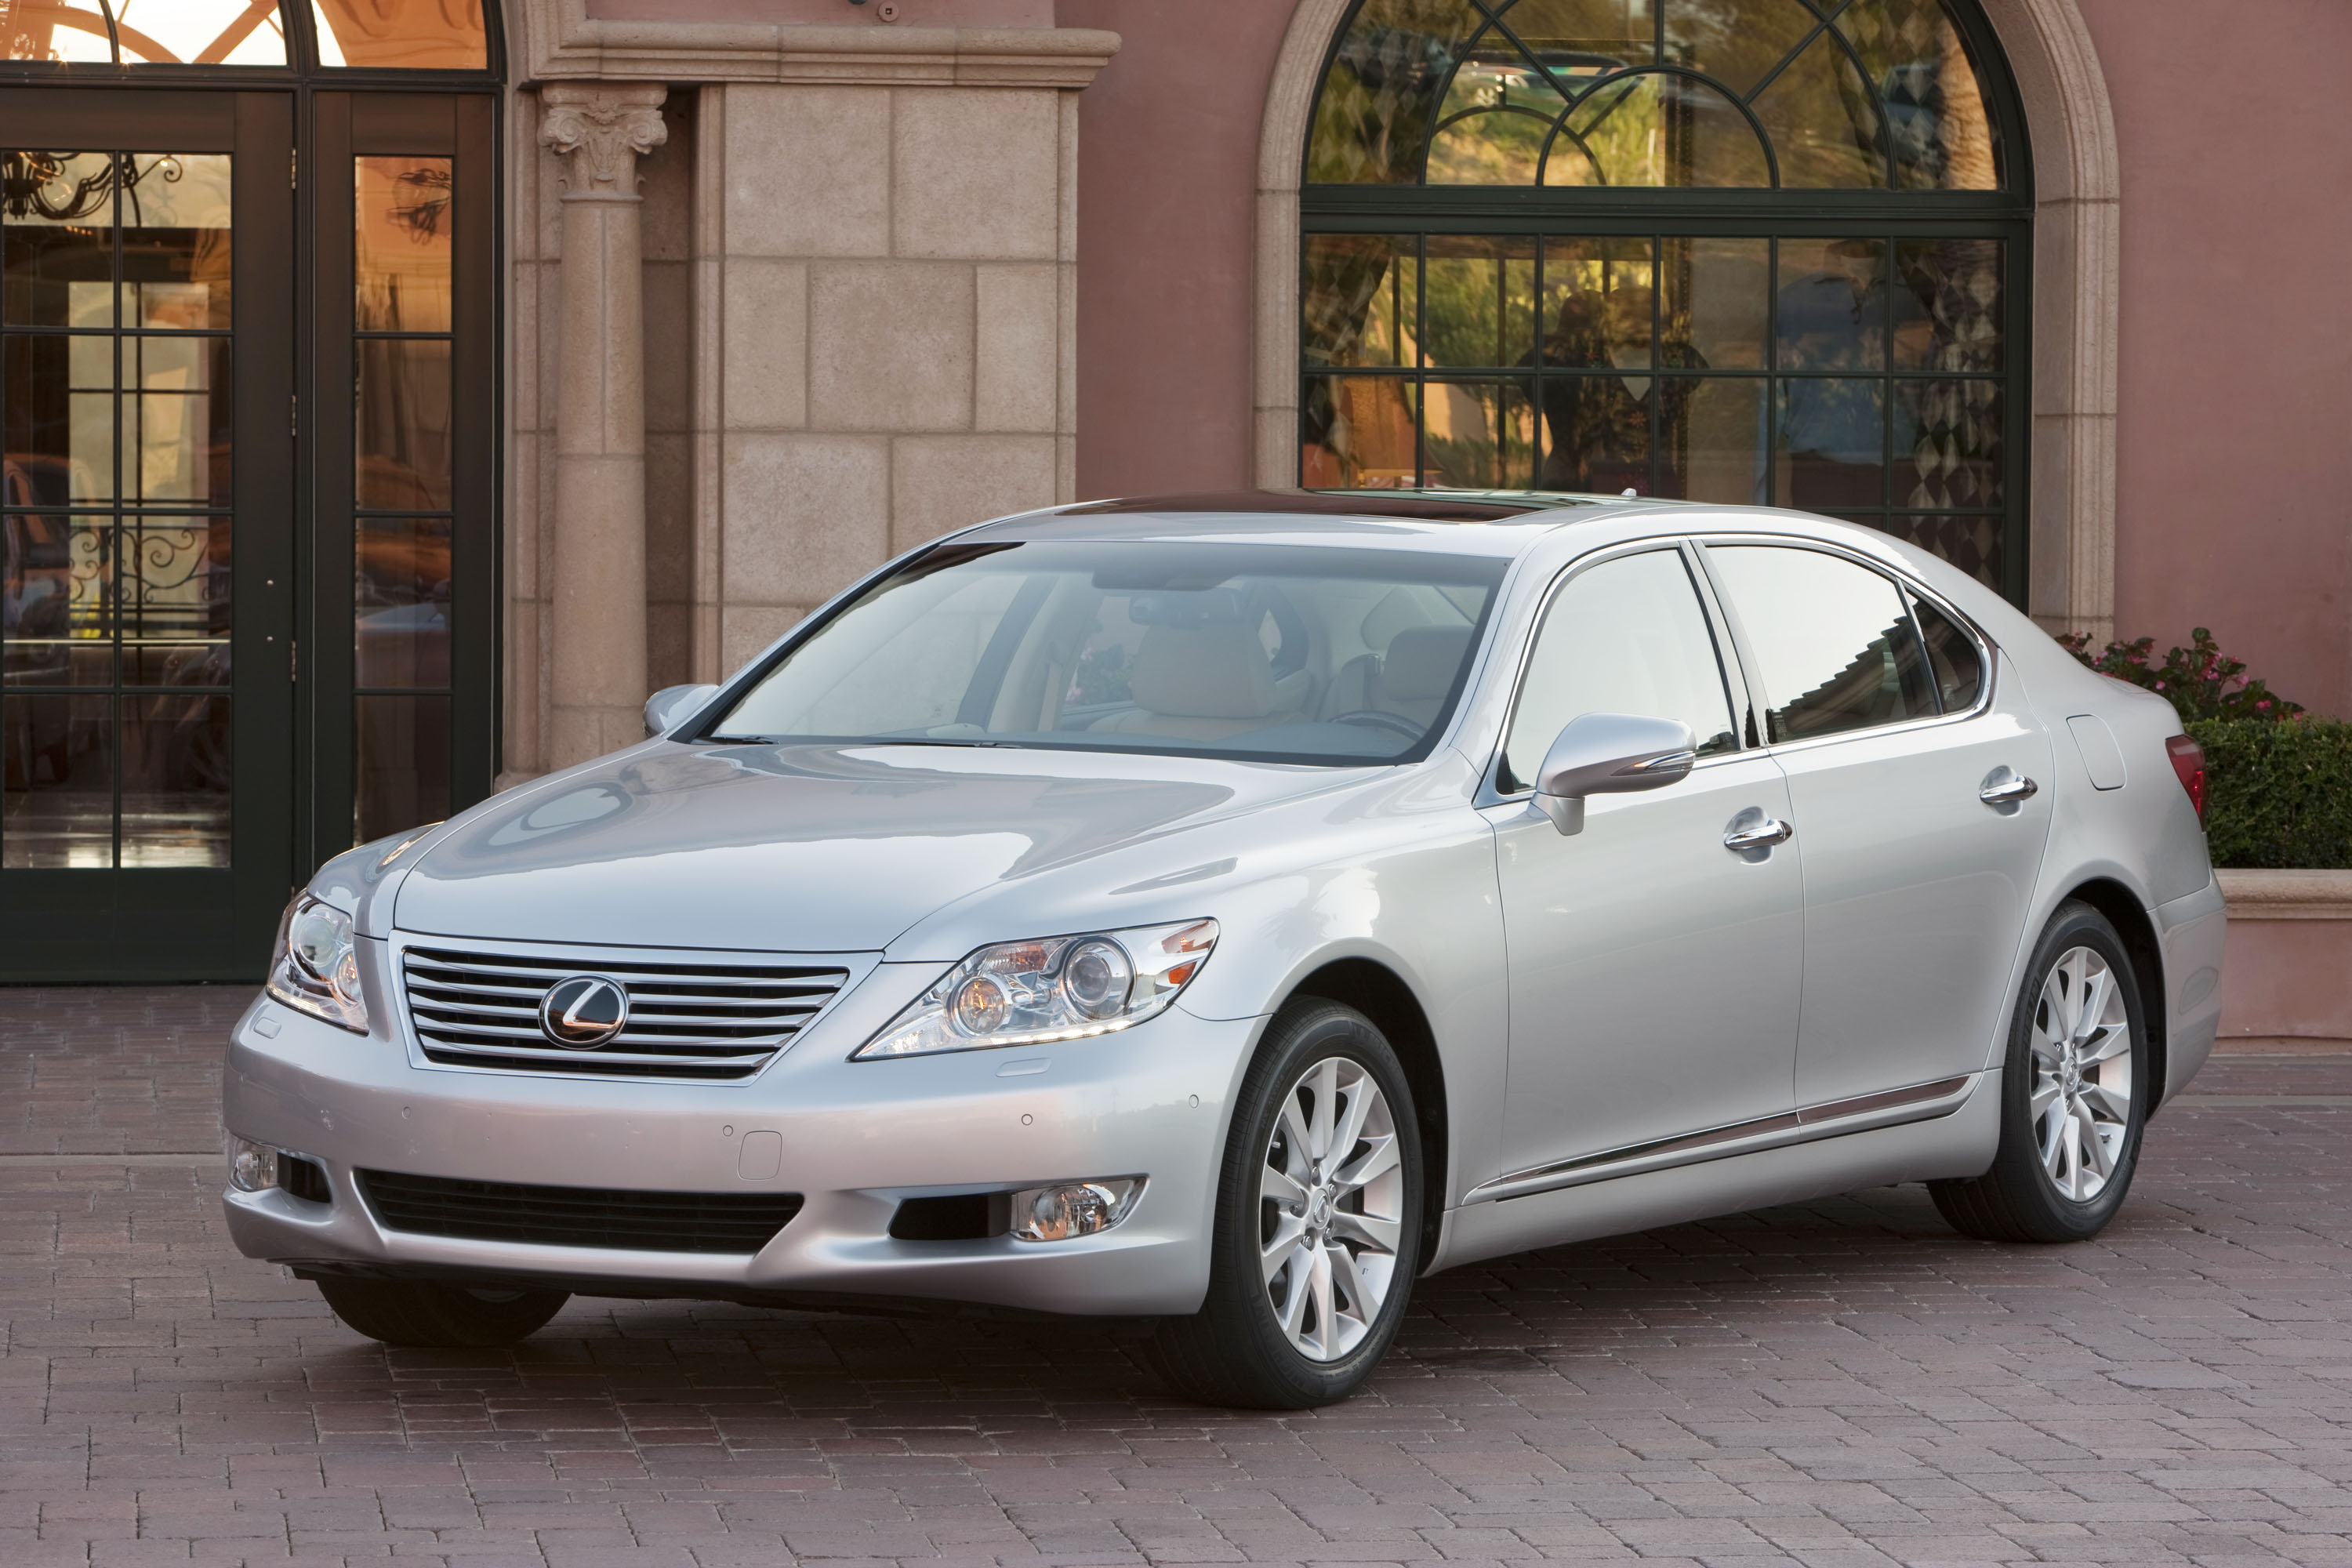 2012 Lexus Ls 460 Review Ratings Specs Prices And